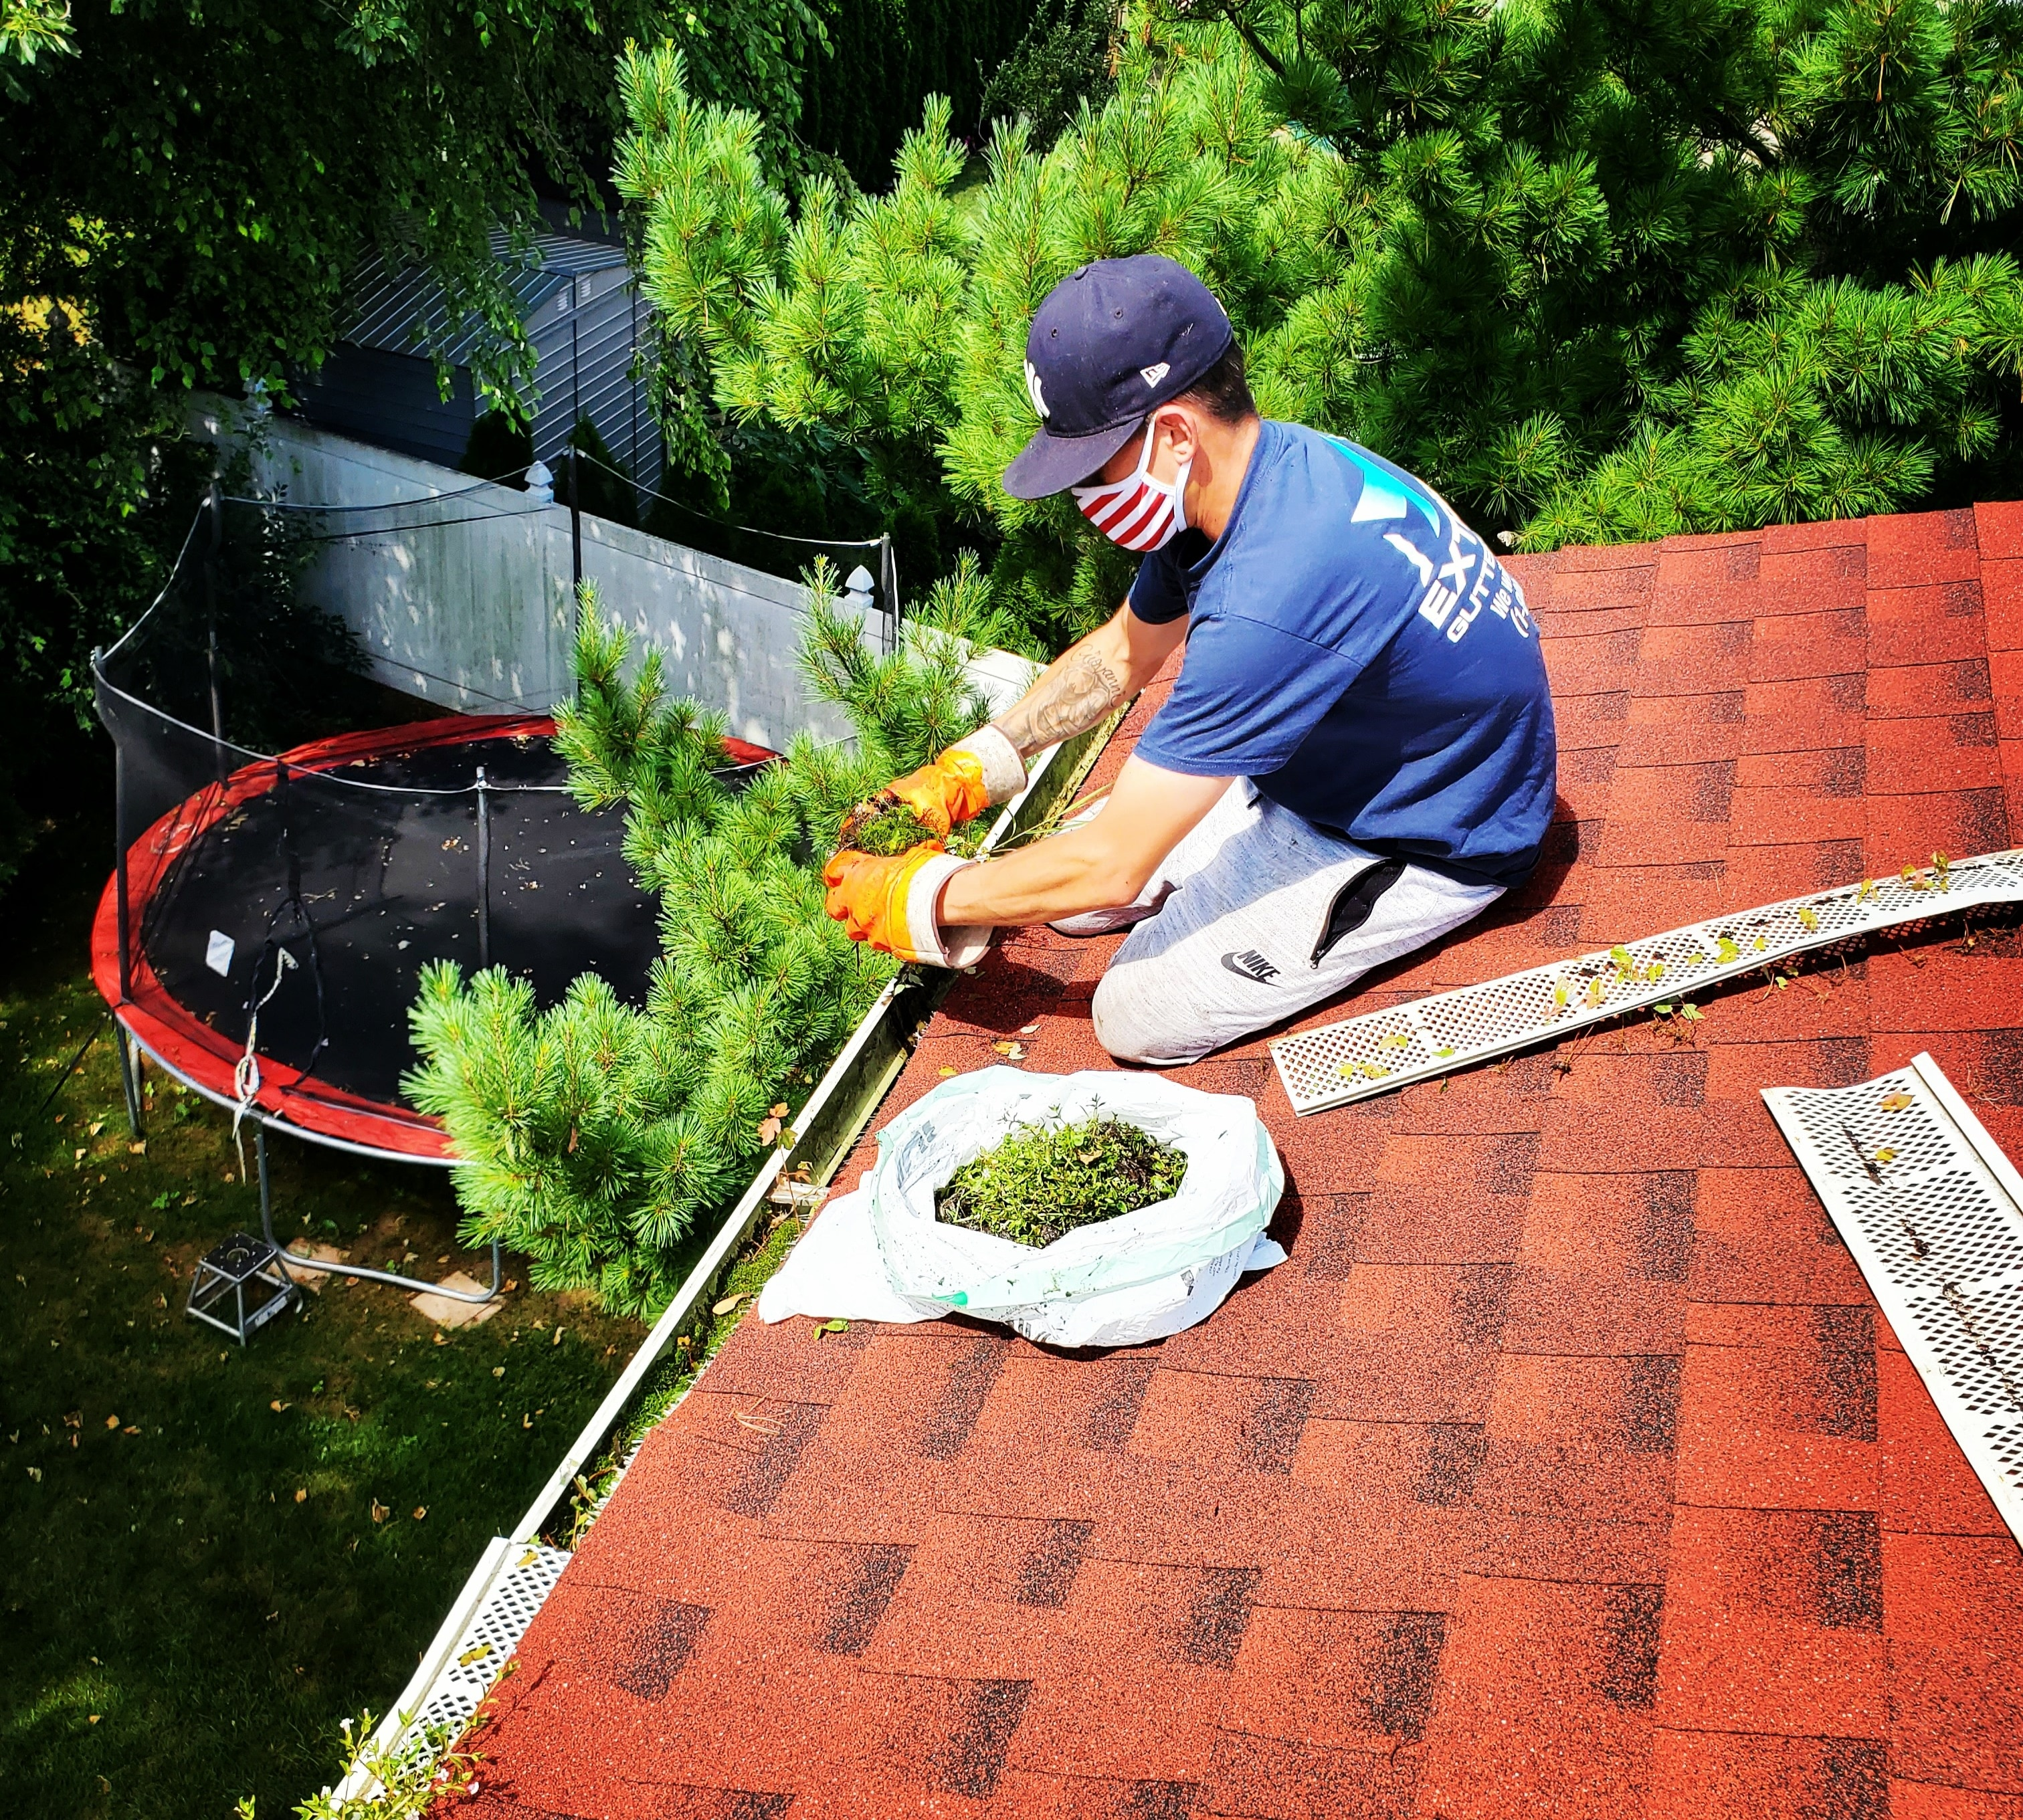 Full Service Gutter Cleaning & Repair